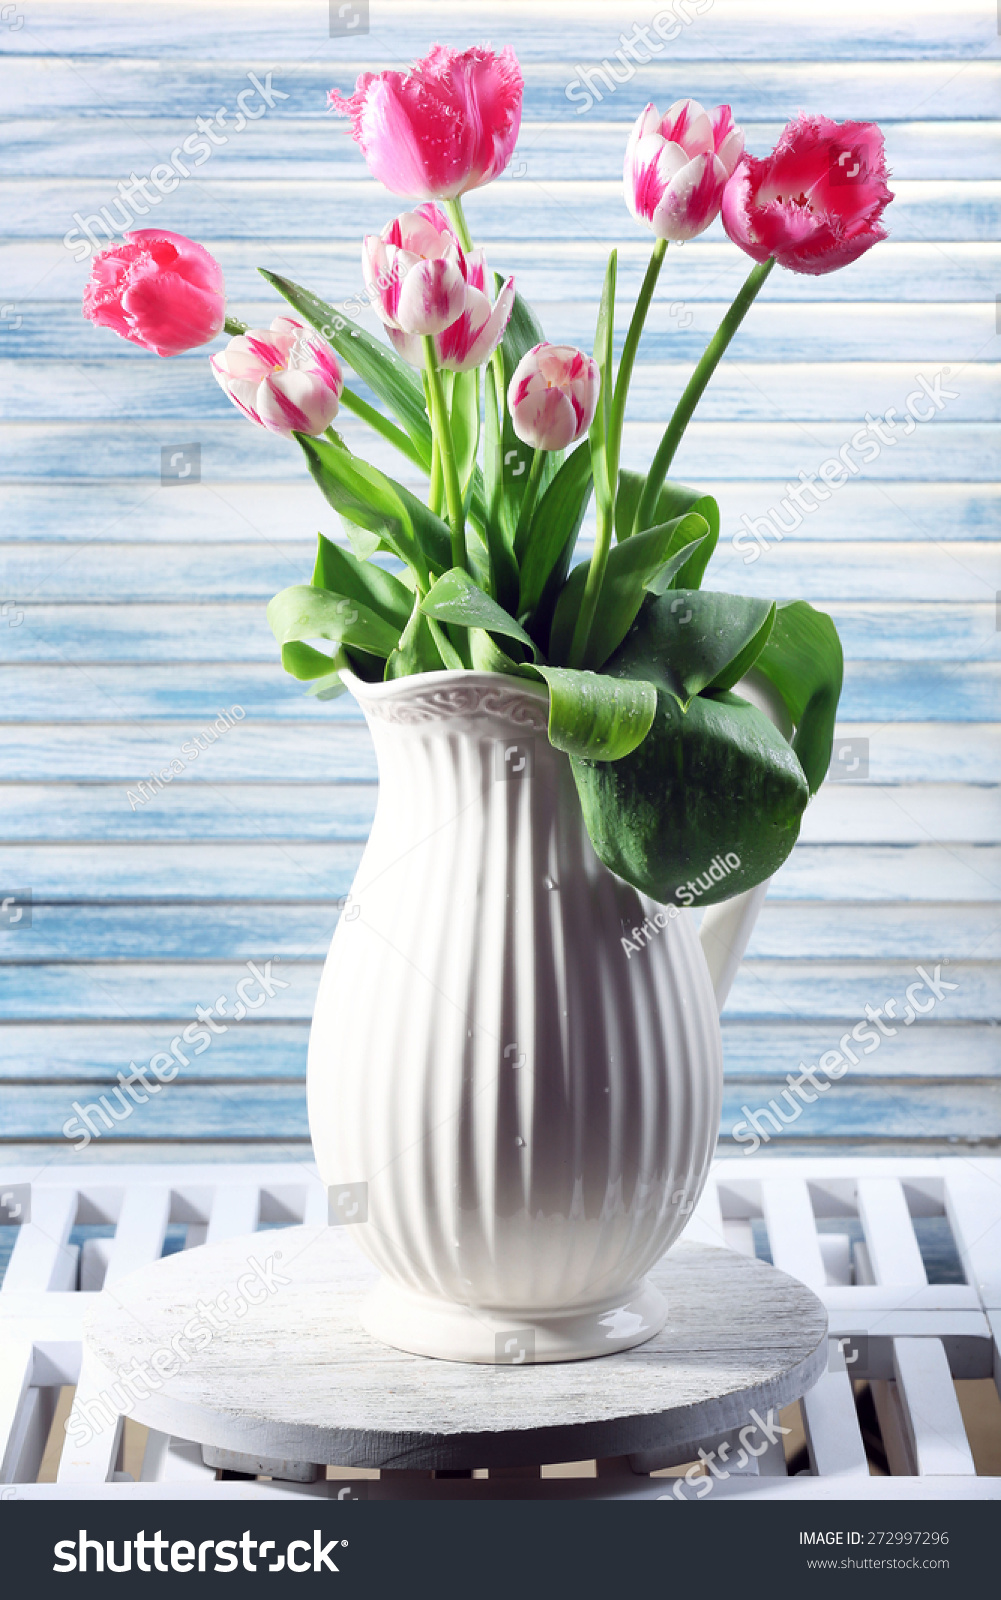 Different beautiful flowers vases on wooden stock photo 272997296 different beautiful flowers in vases on wooden background izmirmasajfo